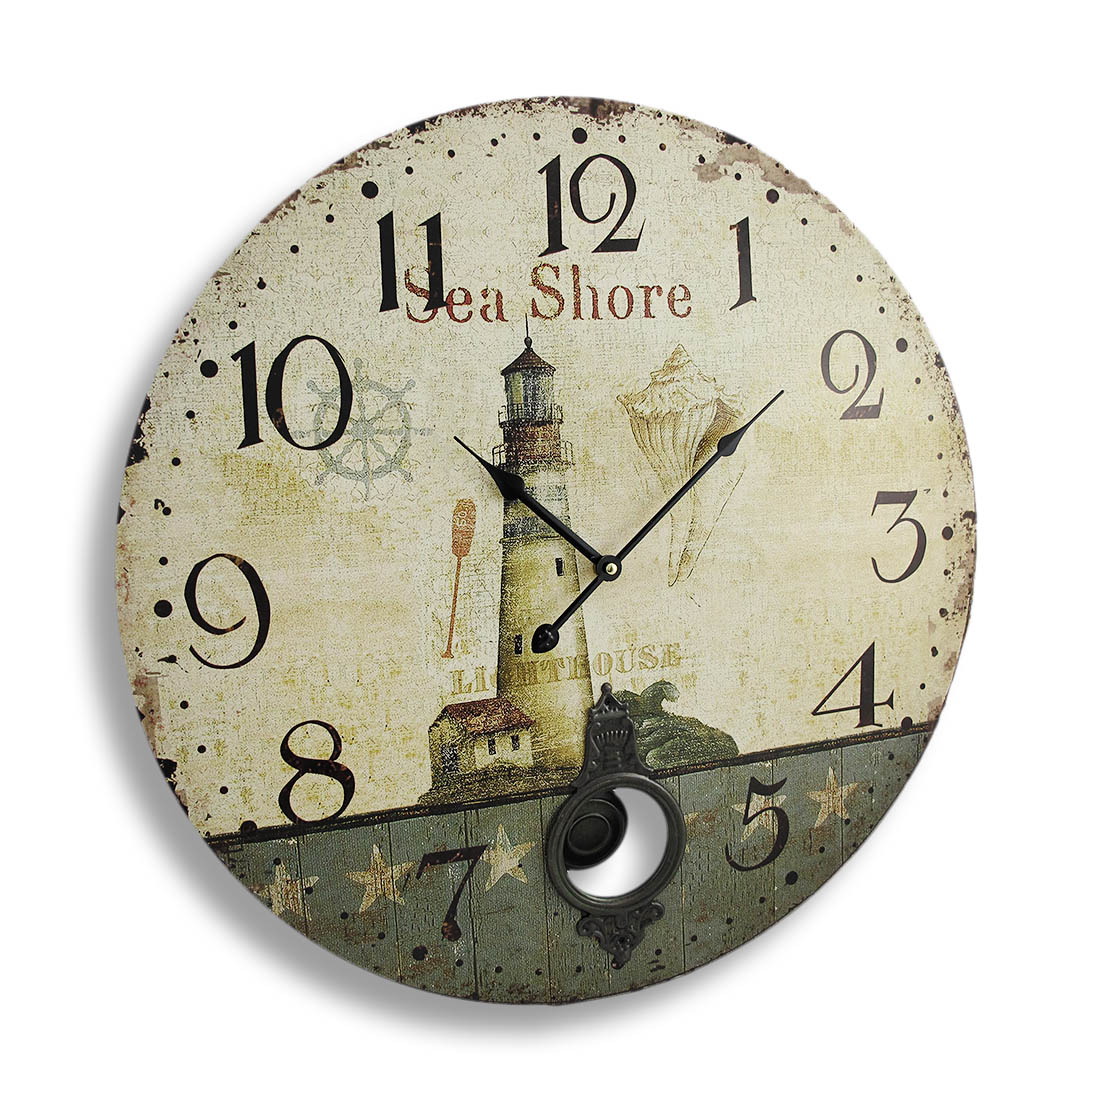 Antique Finish Seashore Lighthouse Wall Clock With